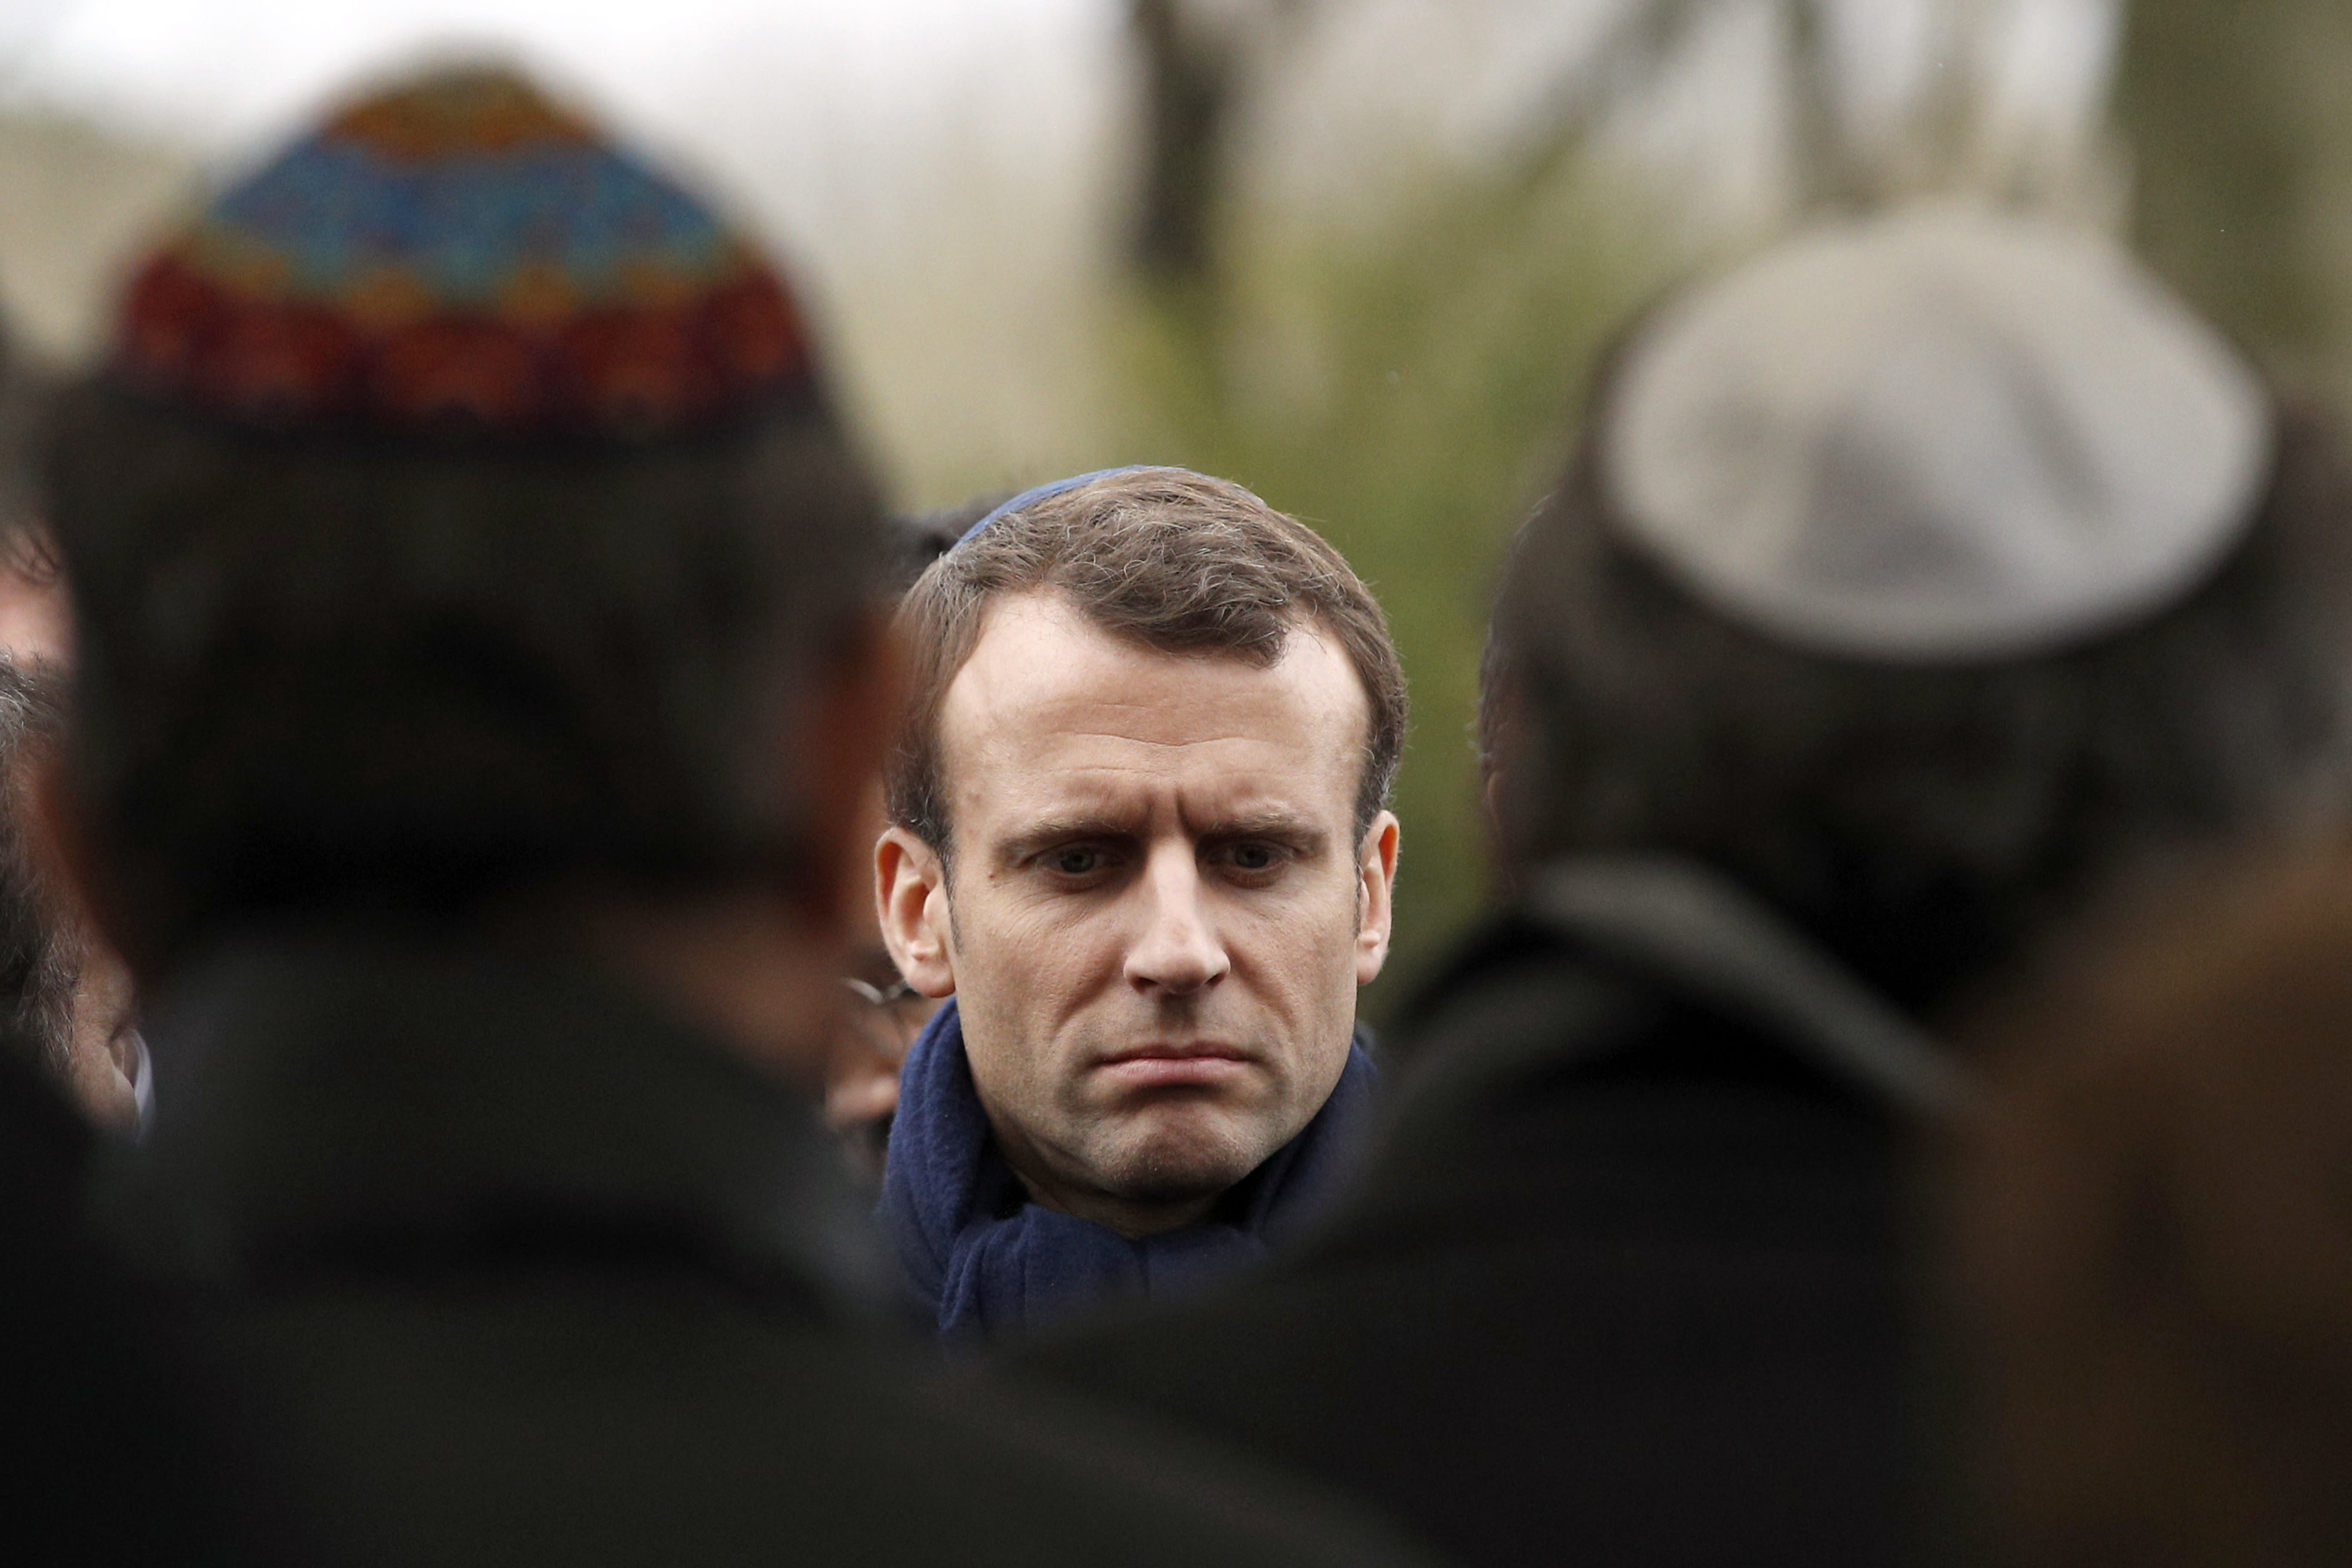 FILE - In this Wednesday, March 28, 2018 file picture French President Emmanuel Macron attends Mireille Knoll's funerals at the Bagneux cemetery , outside Paris. Family members and friends gathered Wednesday to honor an 85-year-old woman who escaped the Nazis 76 years ago but was stabbed to death last week in her Paris apartment, apparently because she was Jewish. France's prime minister is sounding the alarm over a sharp rise in anti-Semitic acts this year, pledging to increase efforts to punish perpetrators and police hate speech online. (AP Photo/Christophe Ena, File)